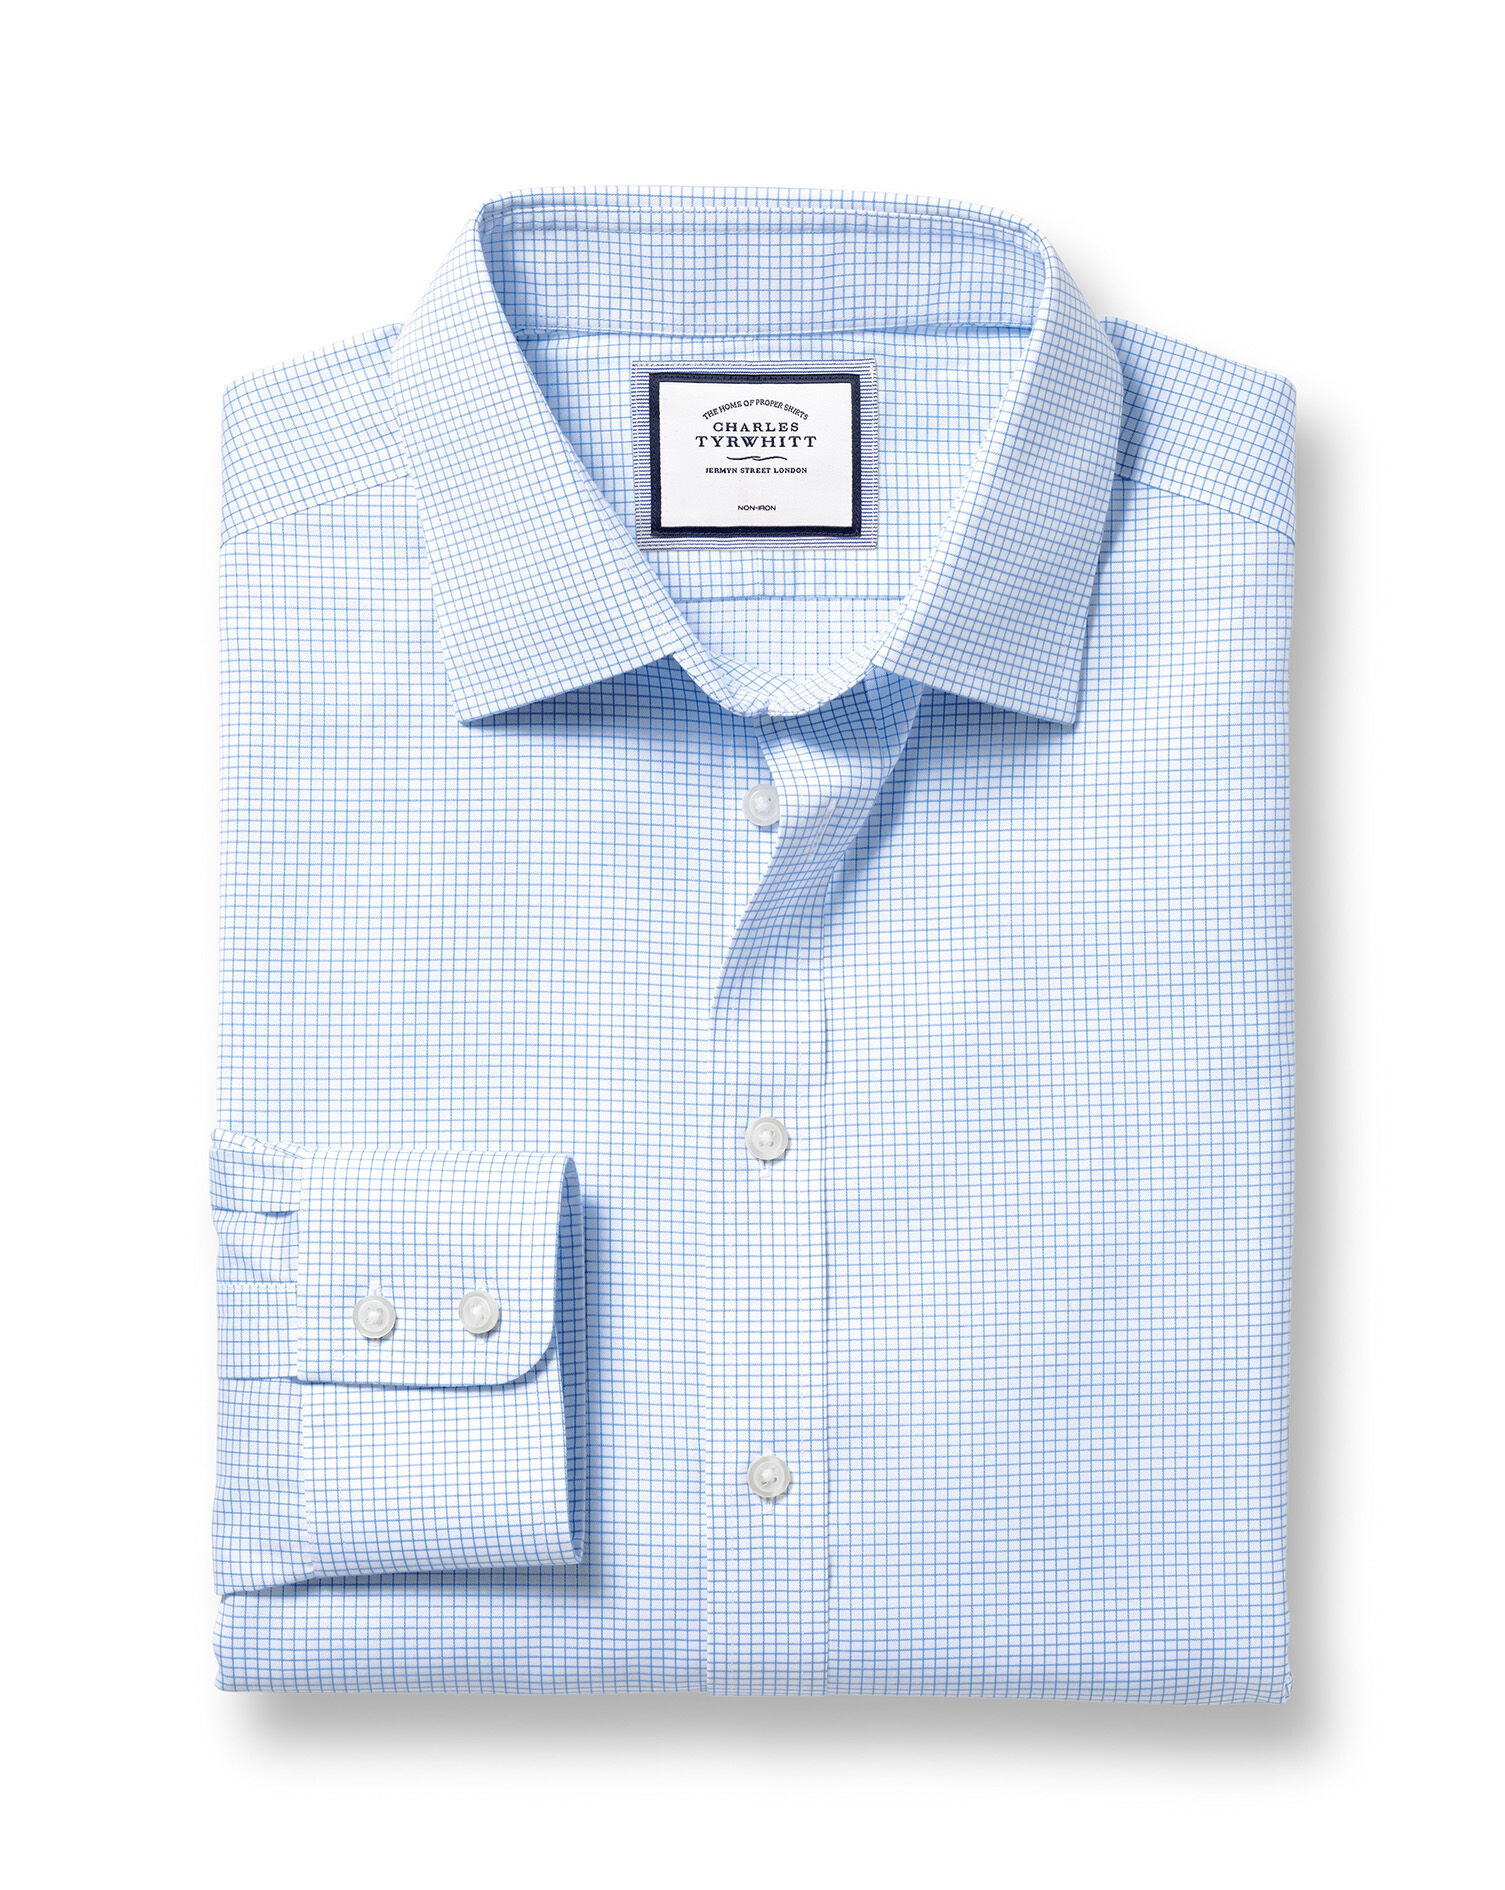 Extra Slim Fit Non-Iron Twill Mini Grid Check Sky Blue Cotton Formal Shirt Double Cuff Size 15.5/34